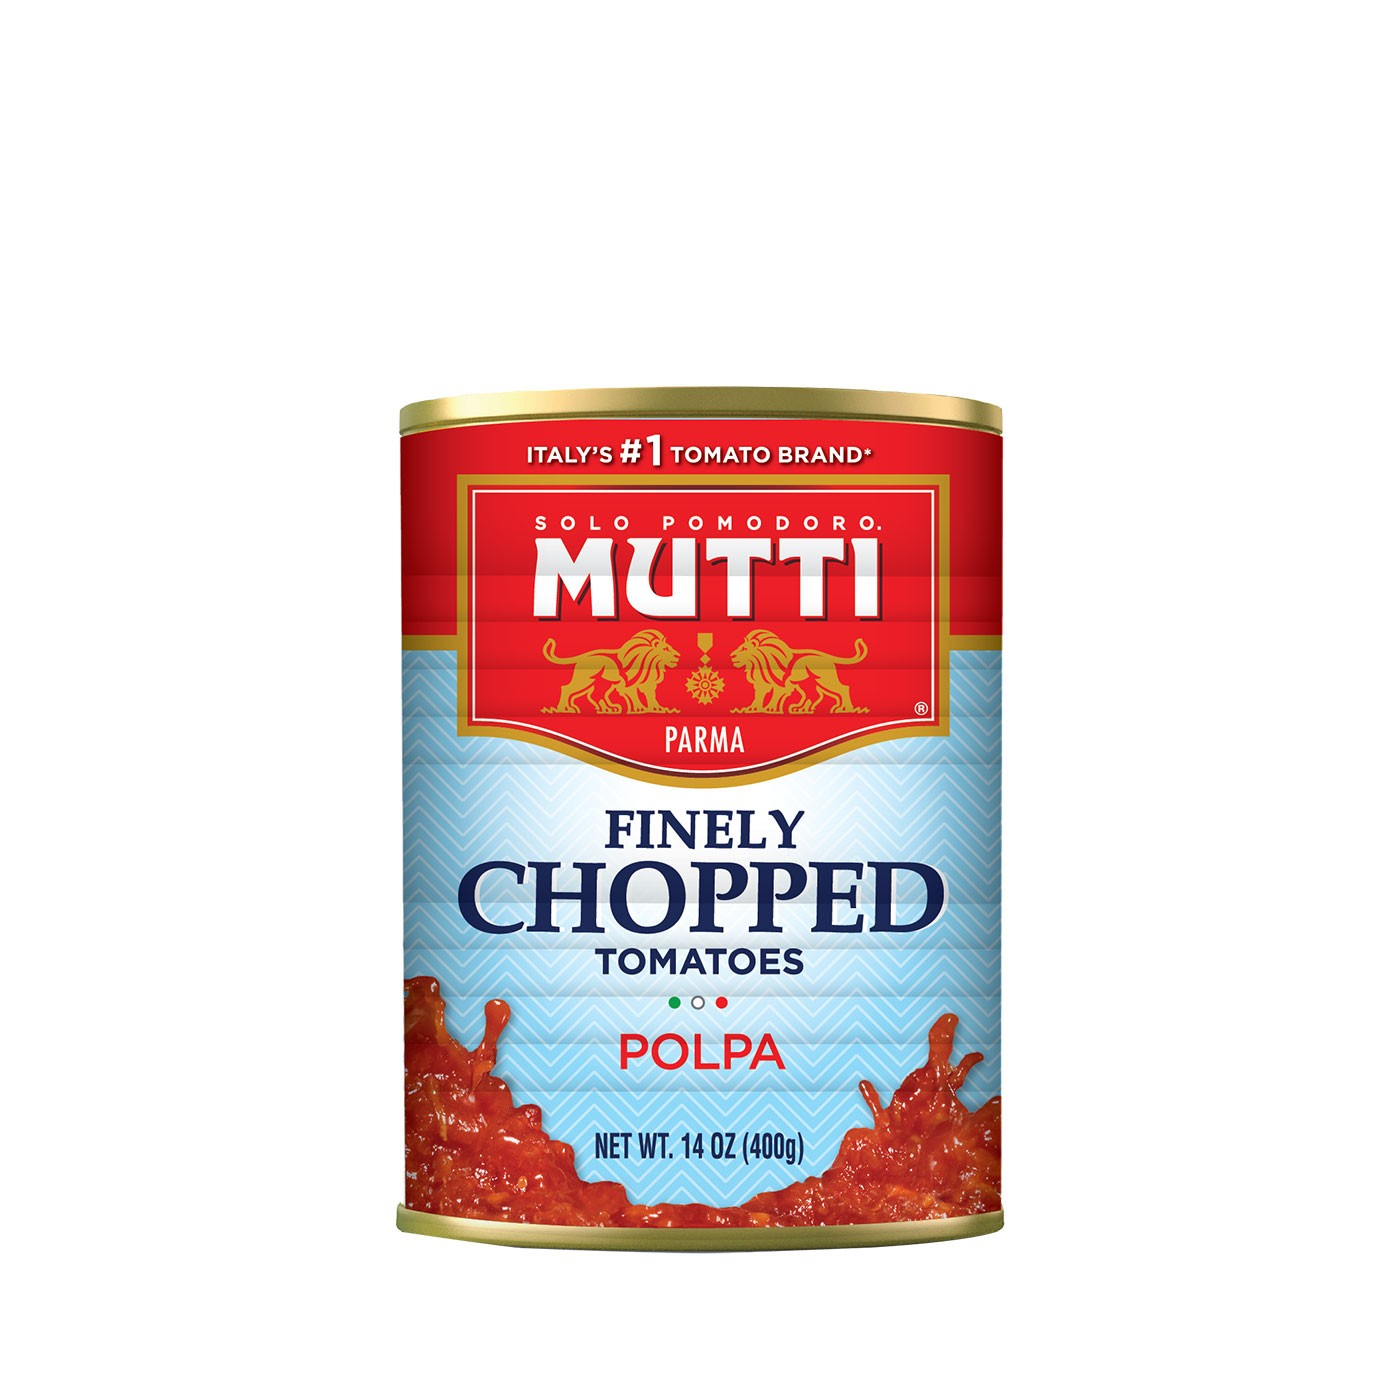 Finely Chopped Tomatoes 14 oz - Mutti | Eataly.com